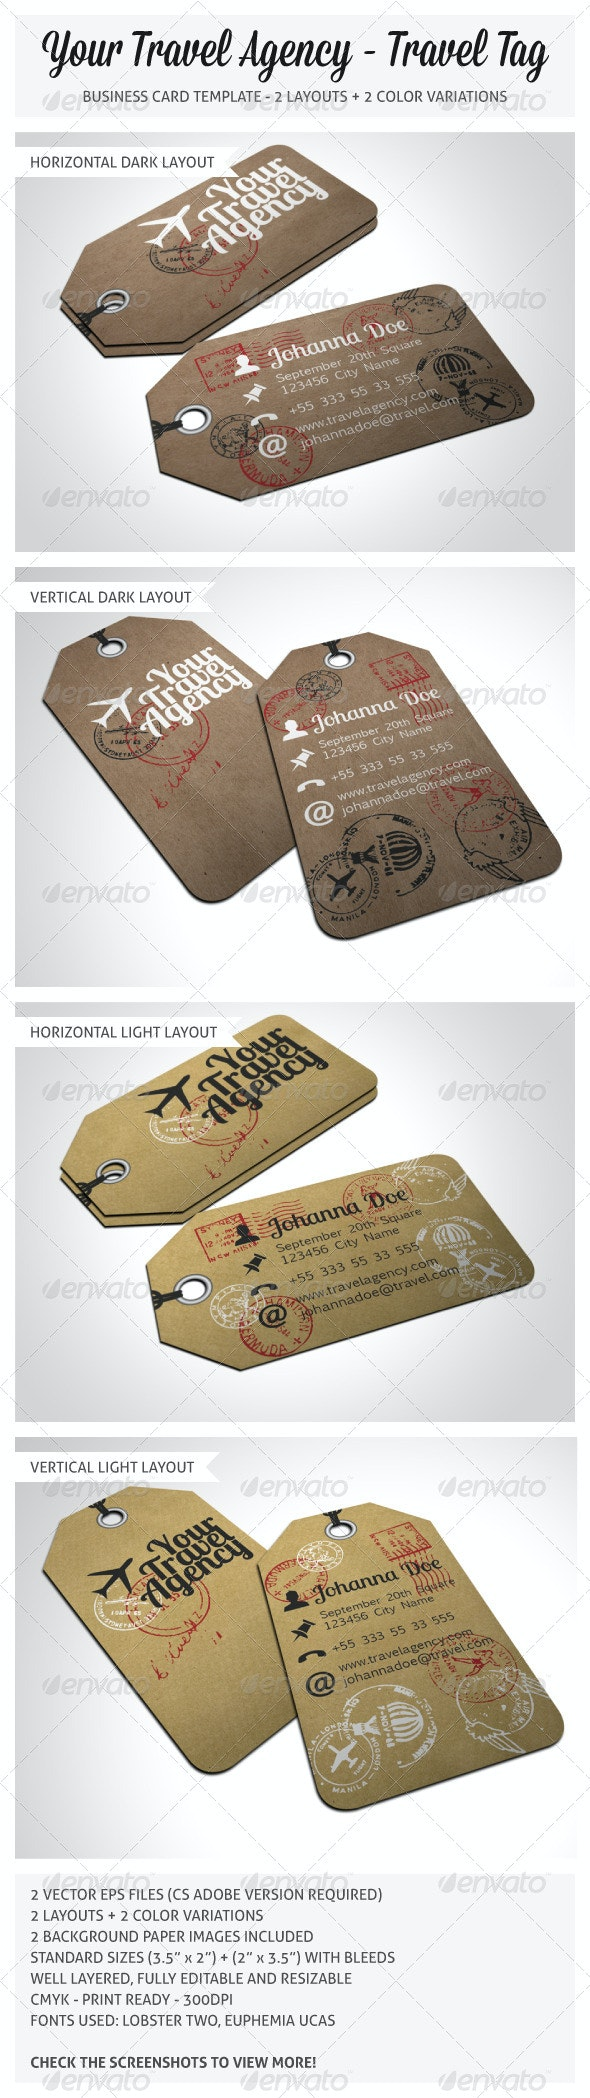 Travel Tag Business Card Template - Real Objects Business Cards